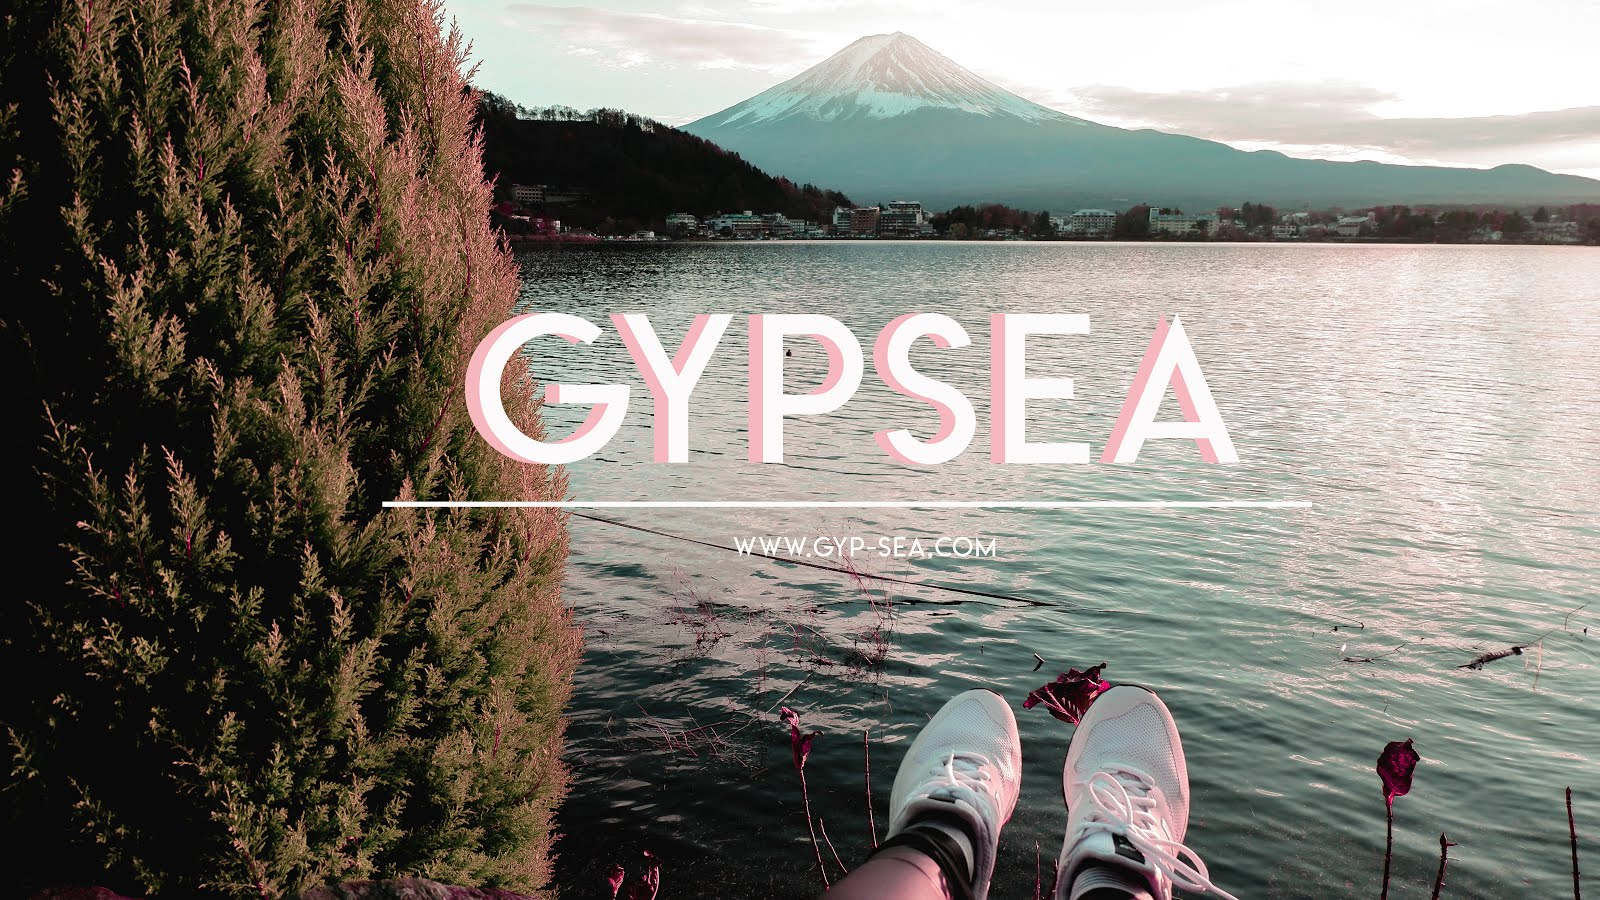 GYPSEA : A Travel Blog